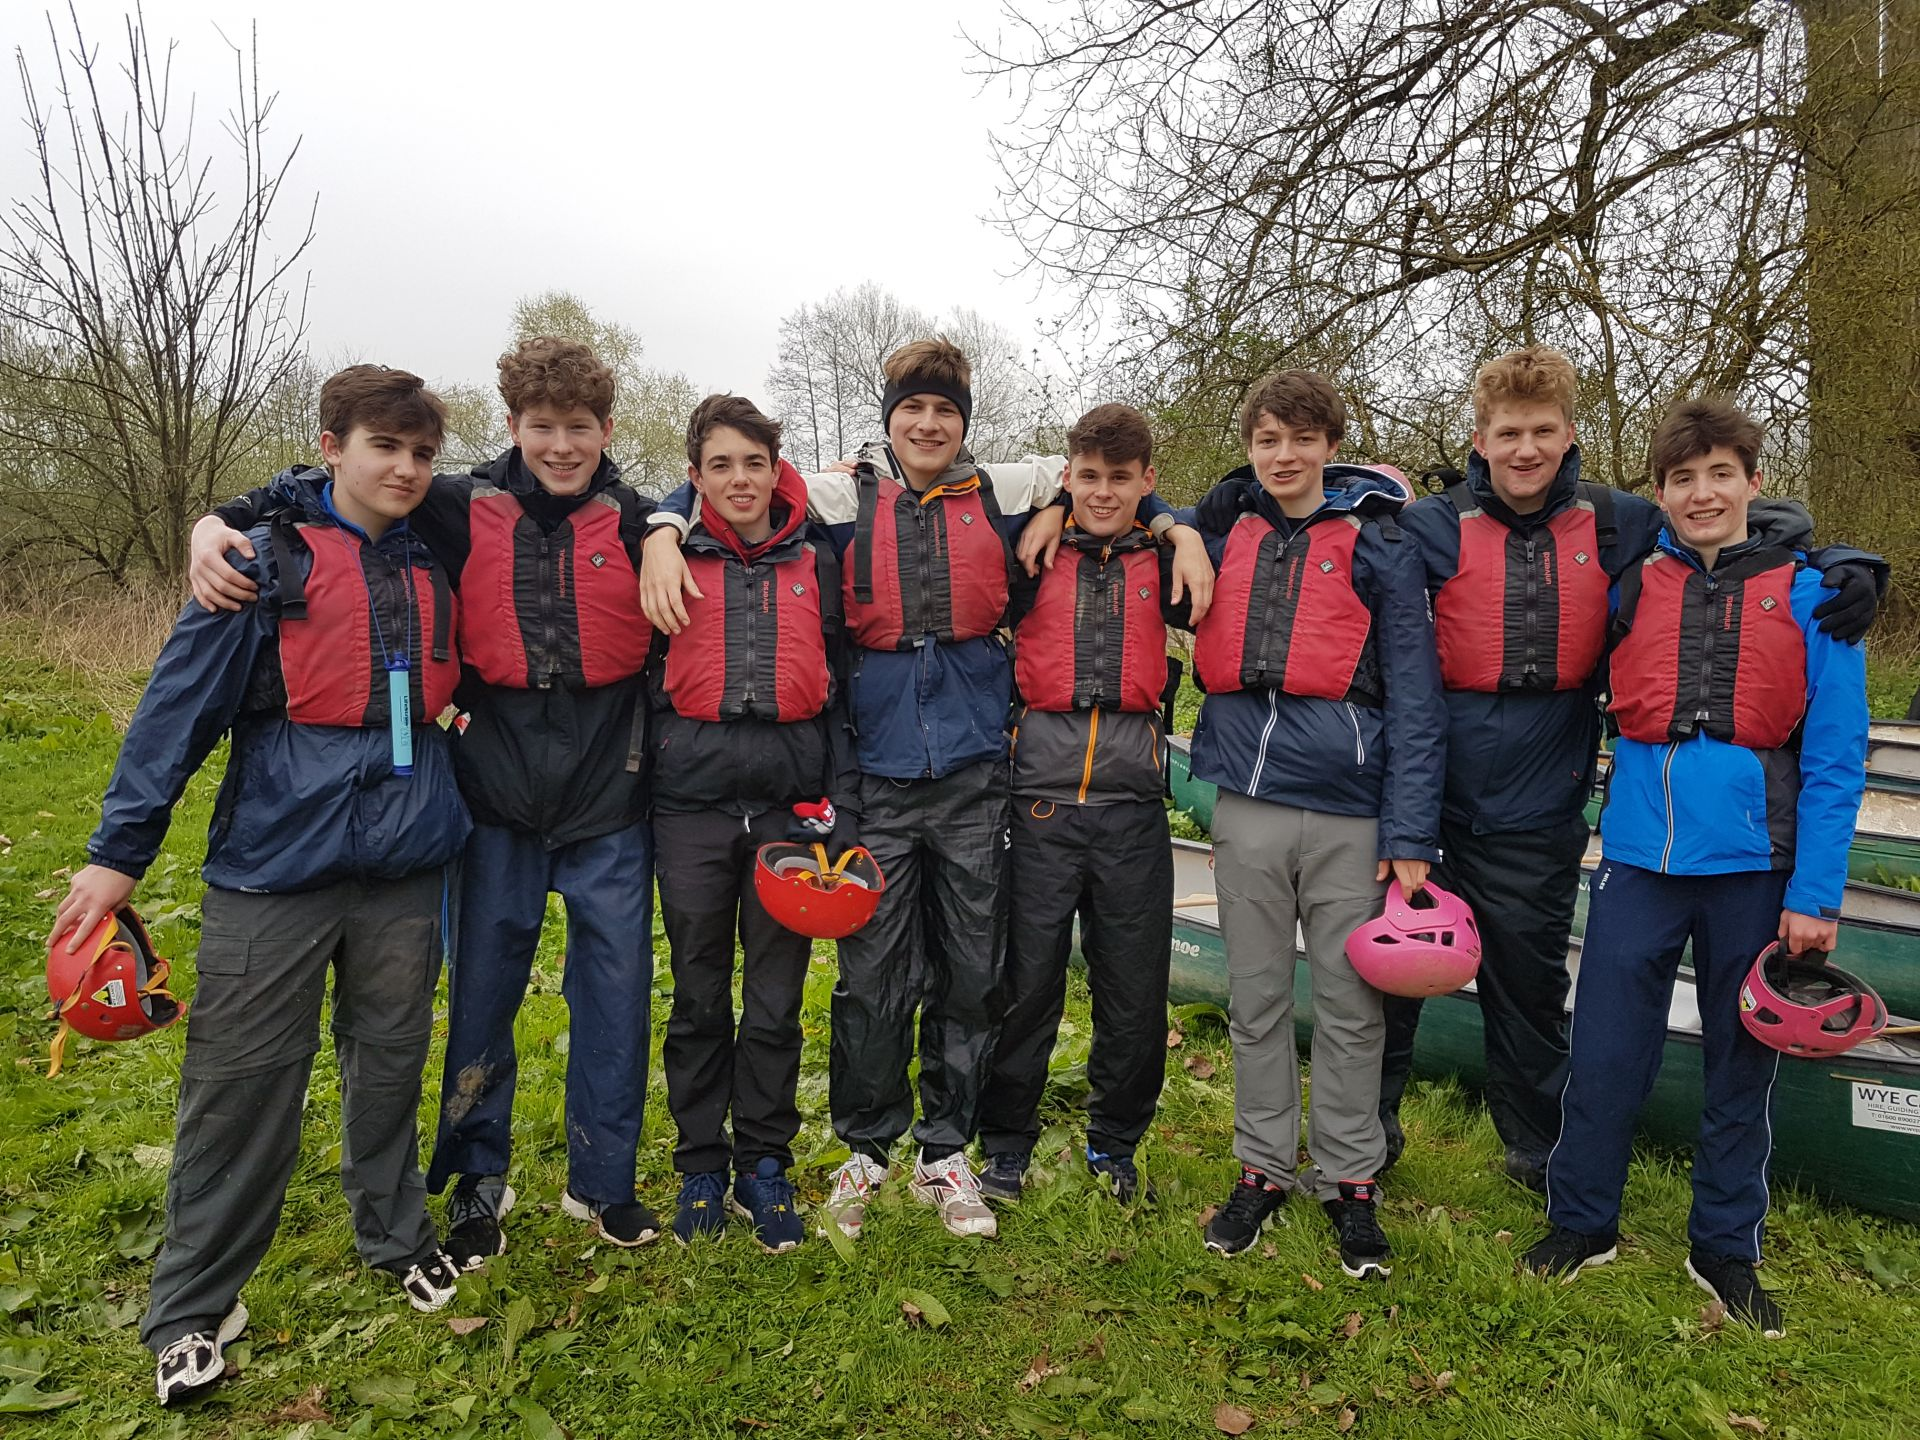 DofE Gold Group